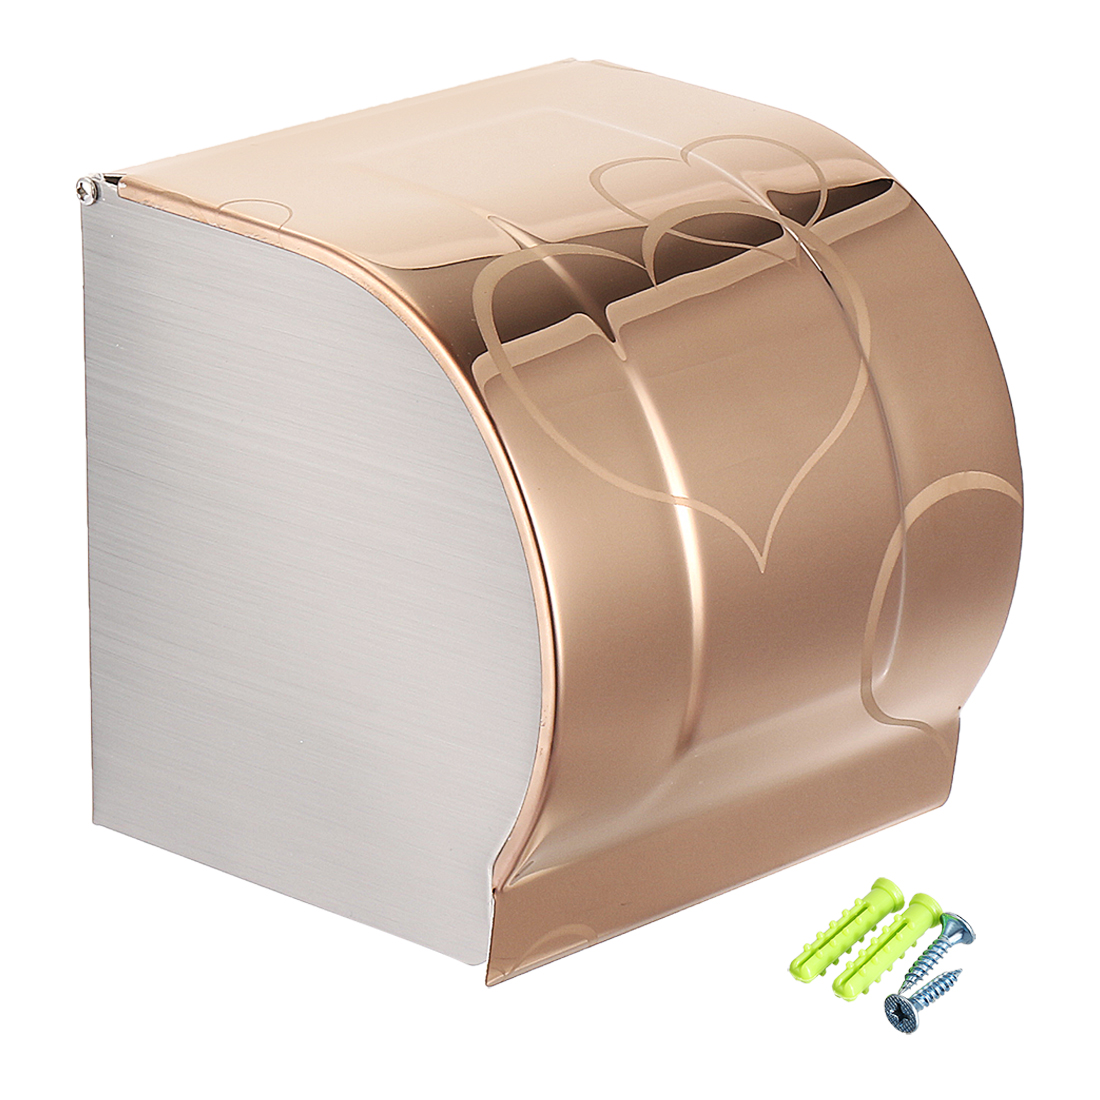 Toilet Paper Holder Stainless Steel Full Covered Wall-Mounted Glossy Rose Gold